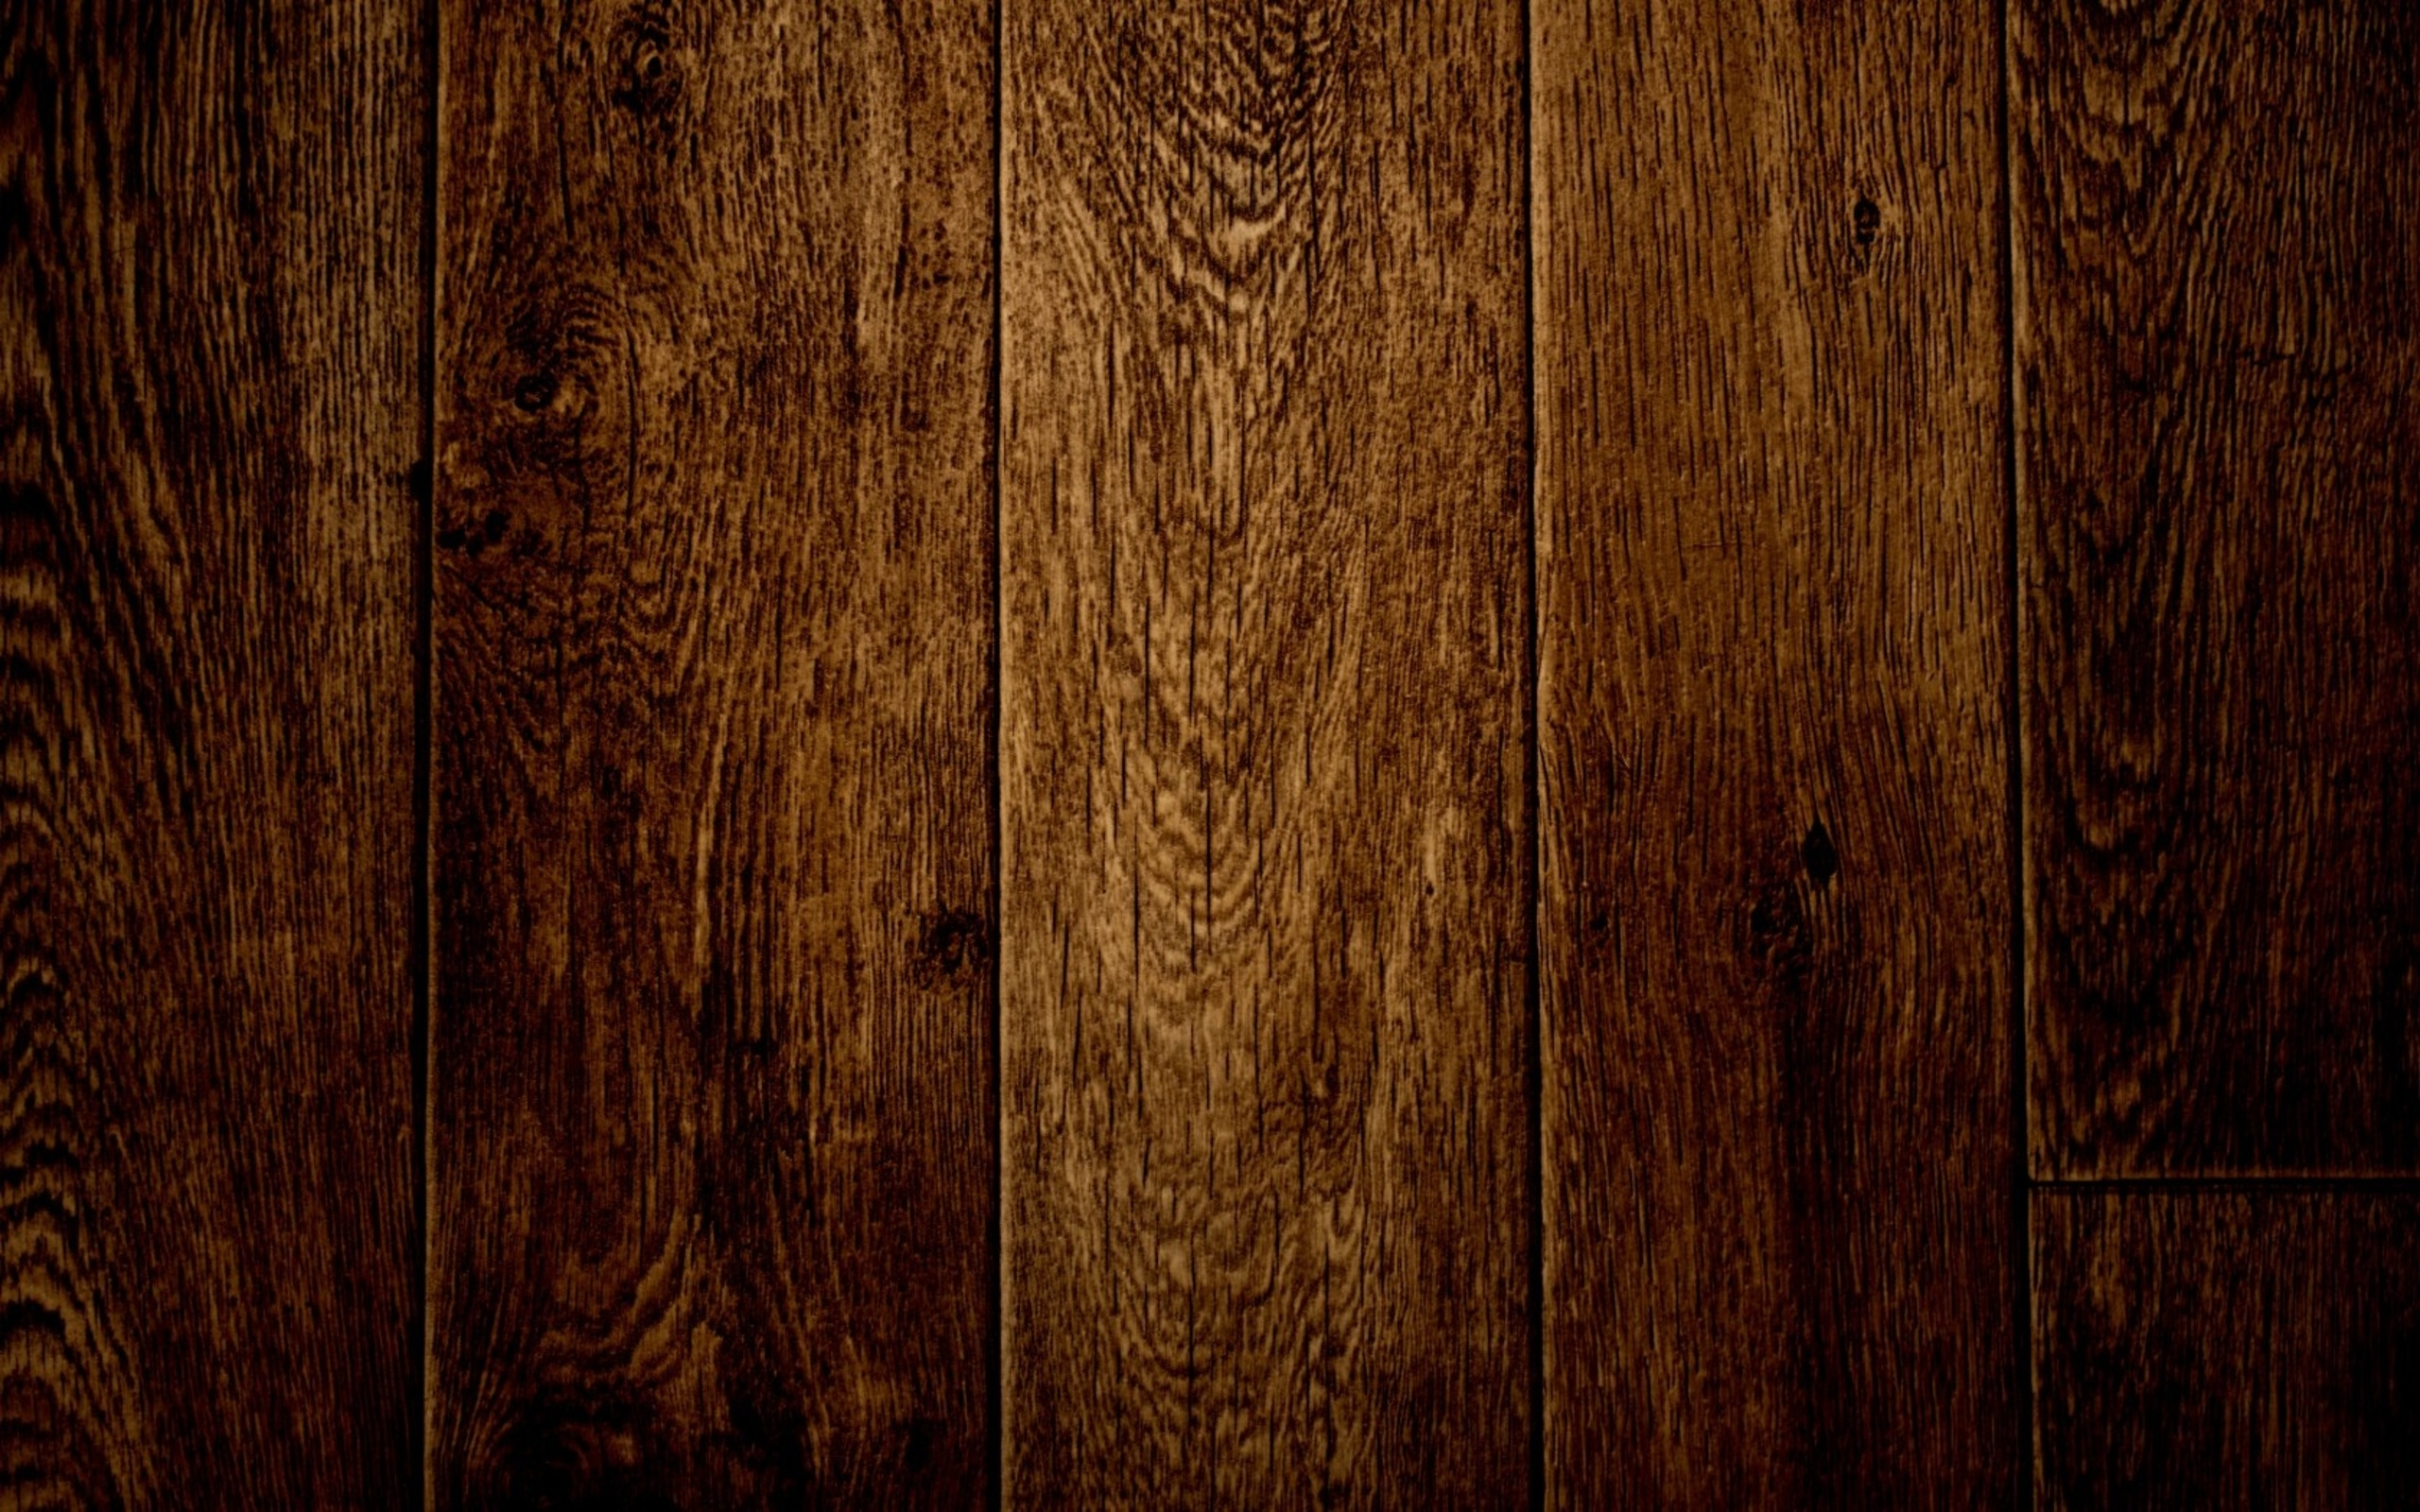 197 Wood HD Wallpapers Background Images 2560x1600